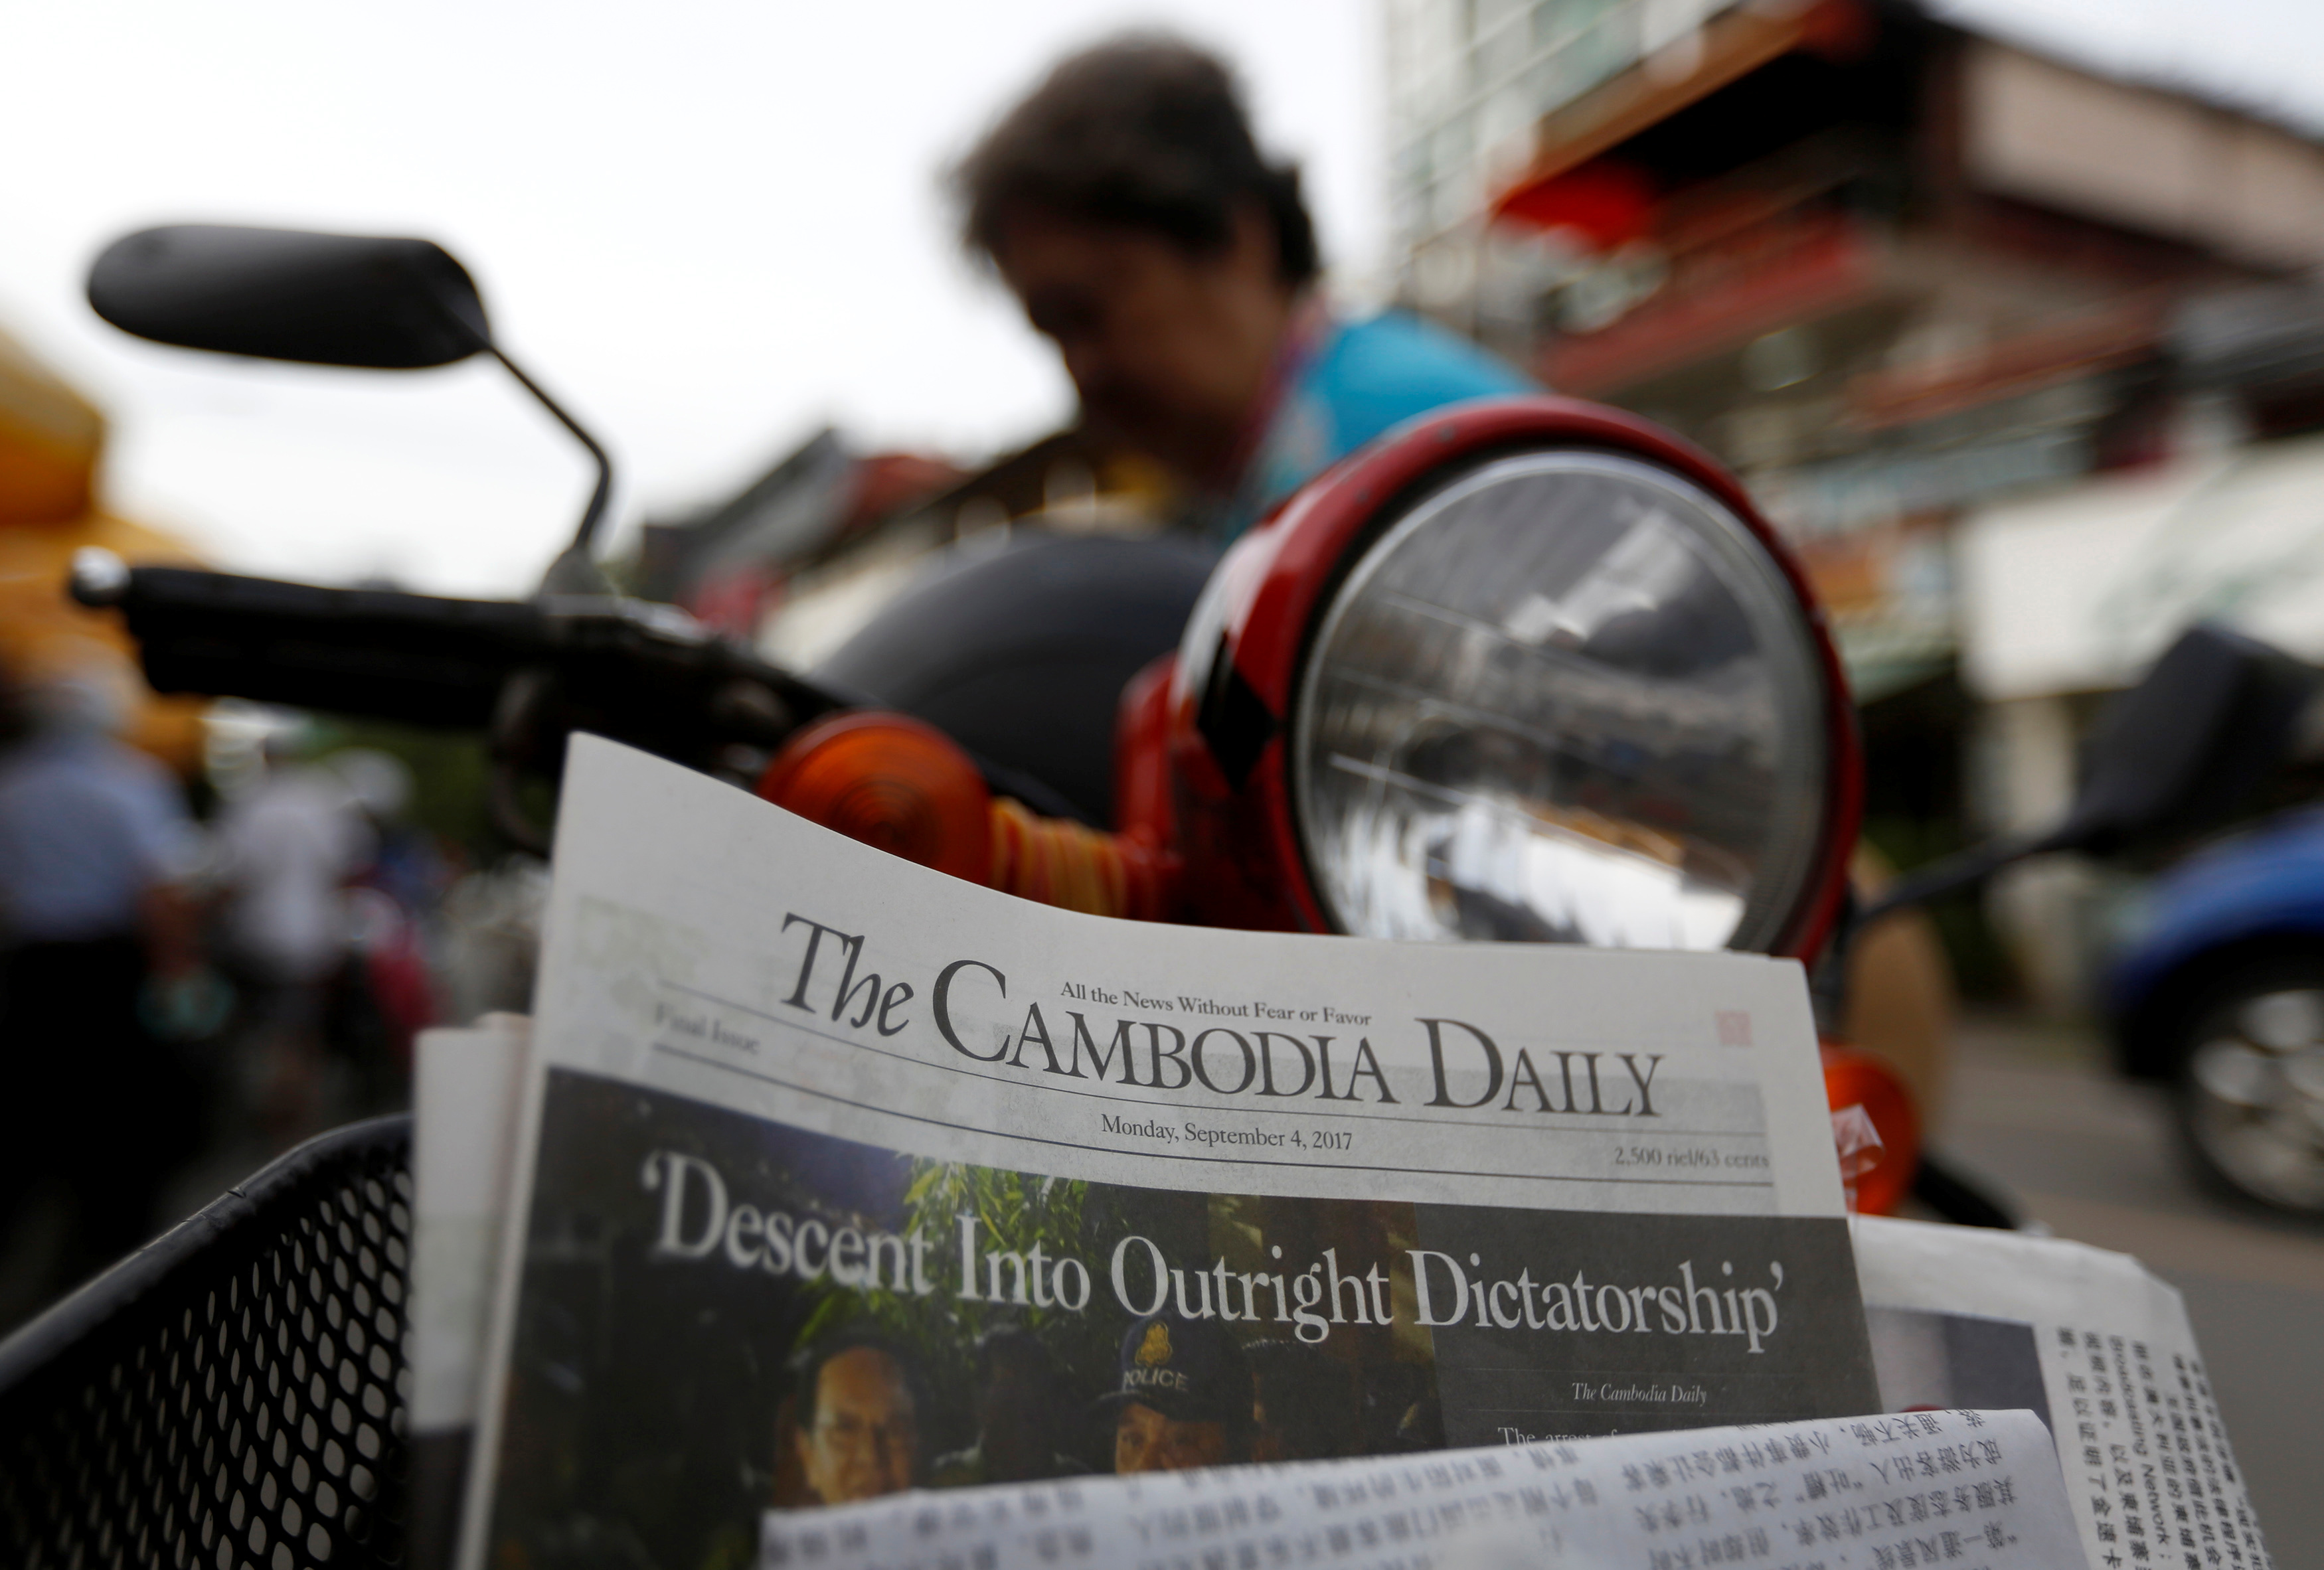 A woman buys the final issue of The Cambodia Daily newspaper at a store along a street in Phnom Penh, Cambodia, Sept. 4, 2017.